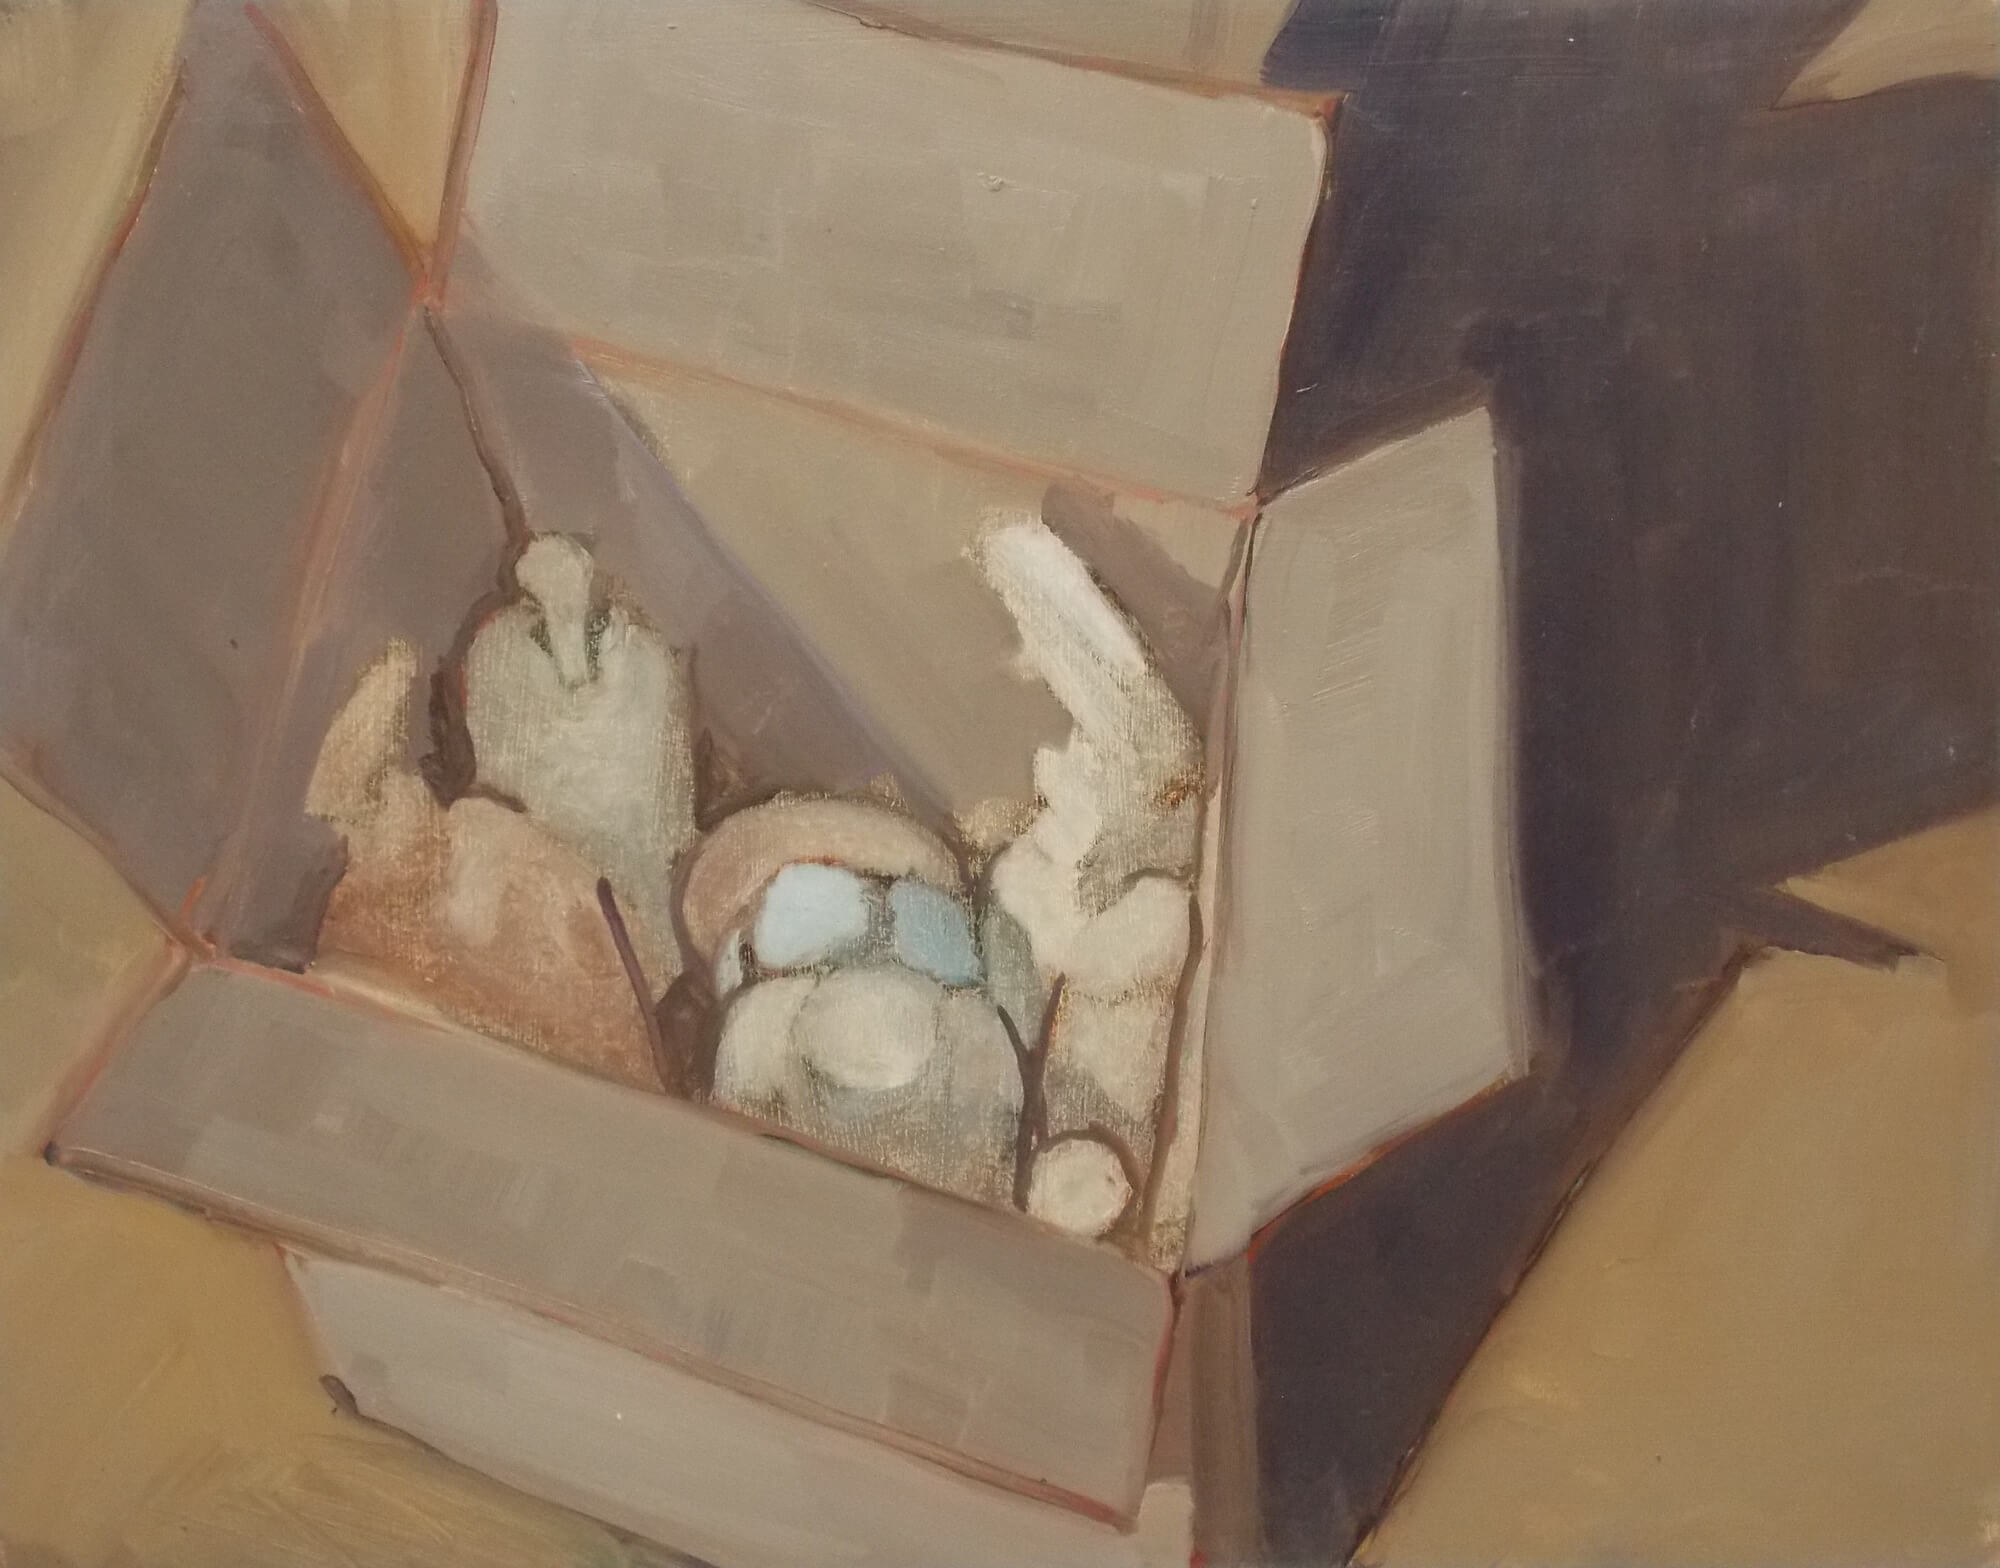 Kim Shannon: Box of Plastic #2, 2019